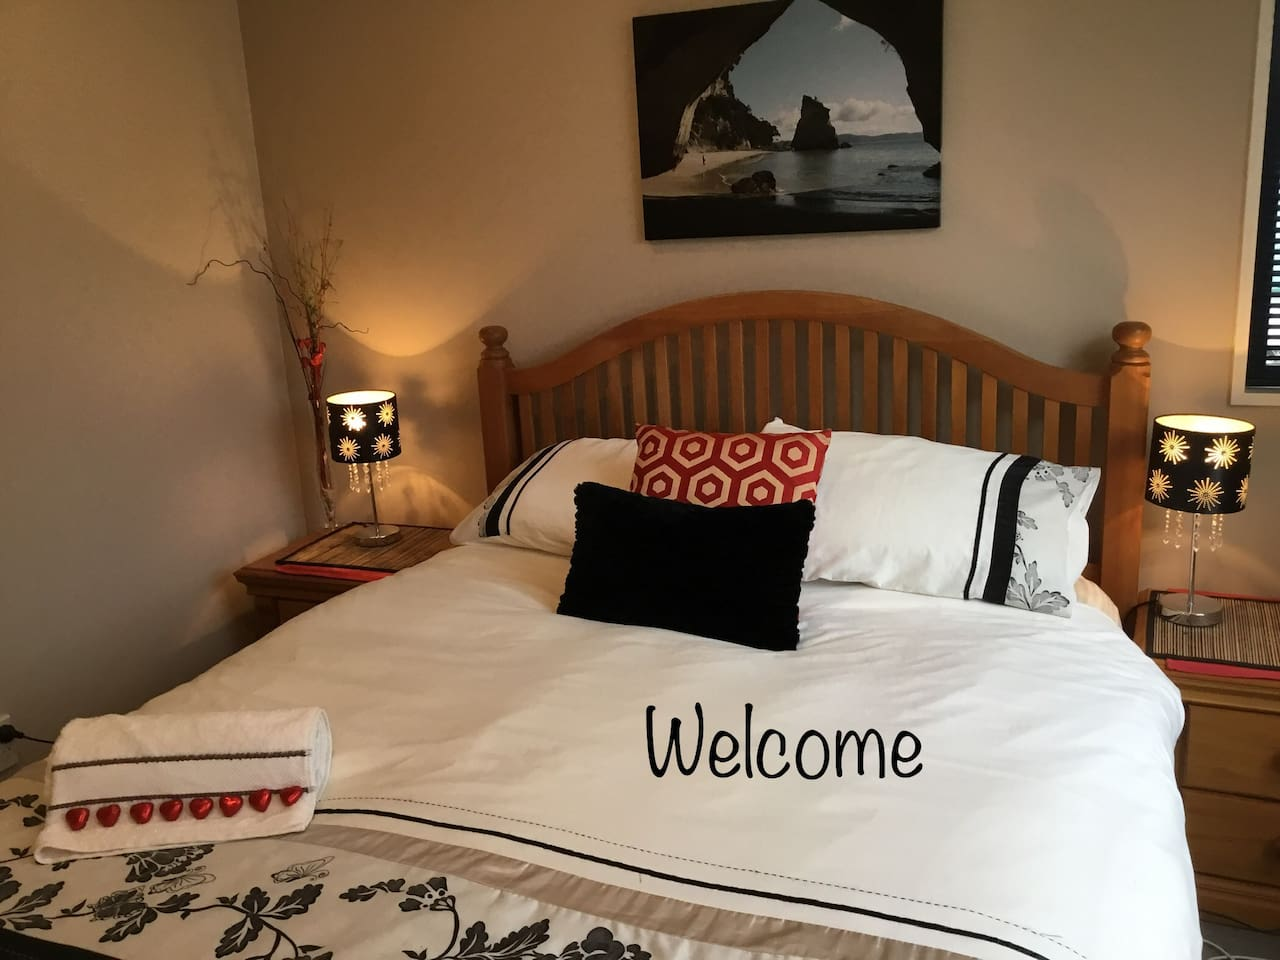 Your Spacious private bedroom, warm in winter, comfortable bed,  overlooking a tranquil park very quiet.